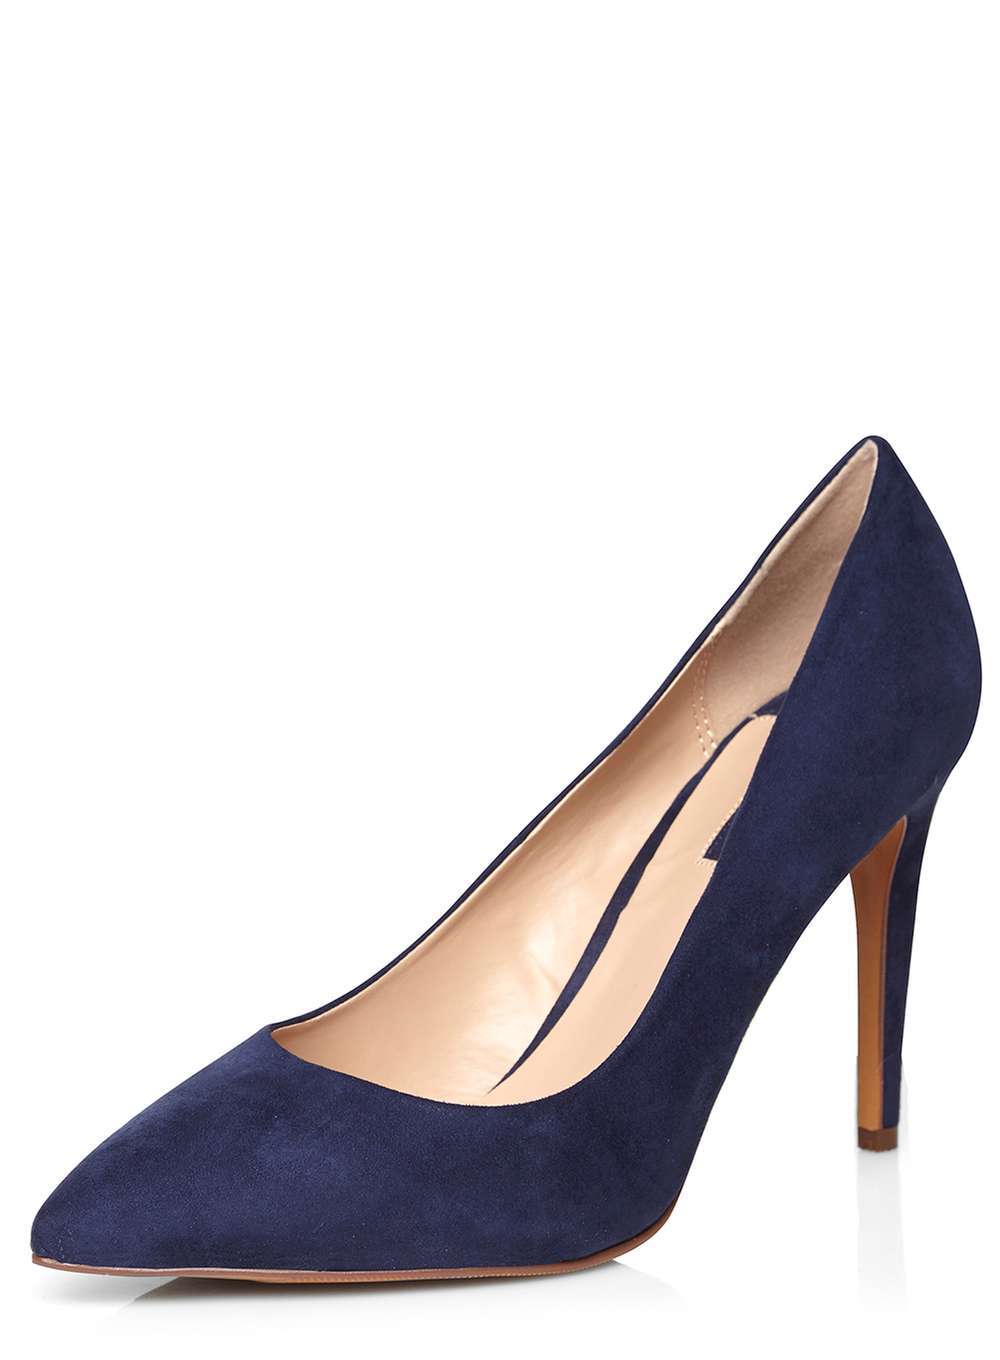 Dorothy Perkins Navy Emily Pointed Court Shoes In Blue